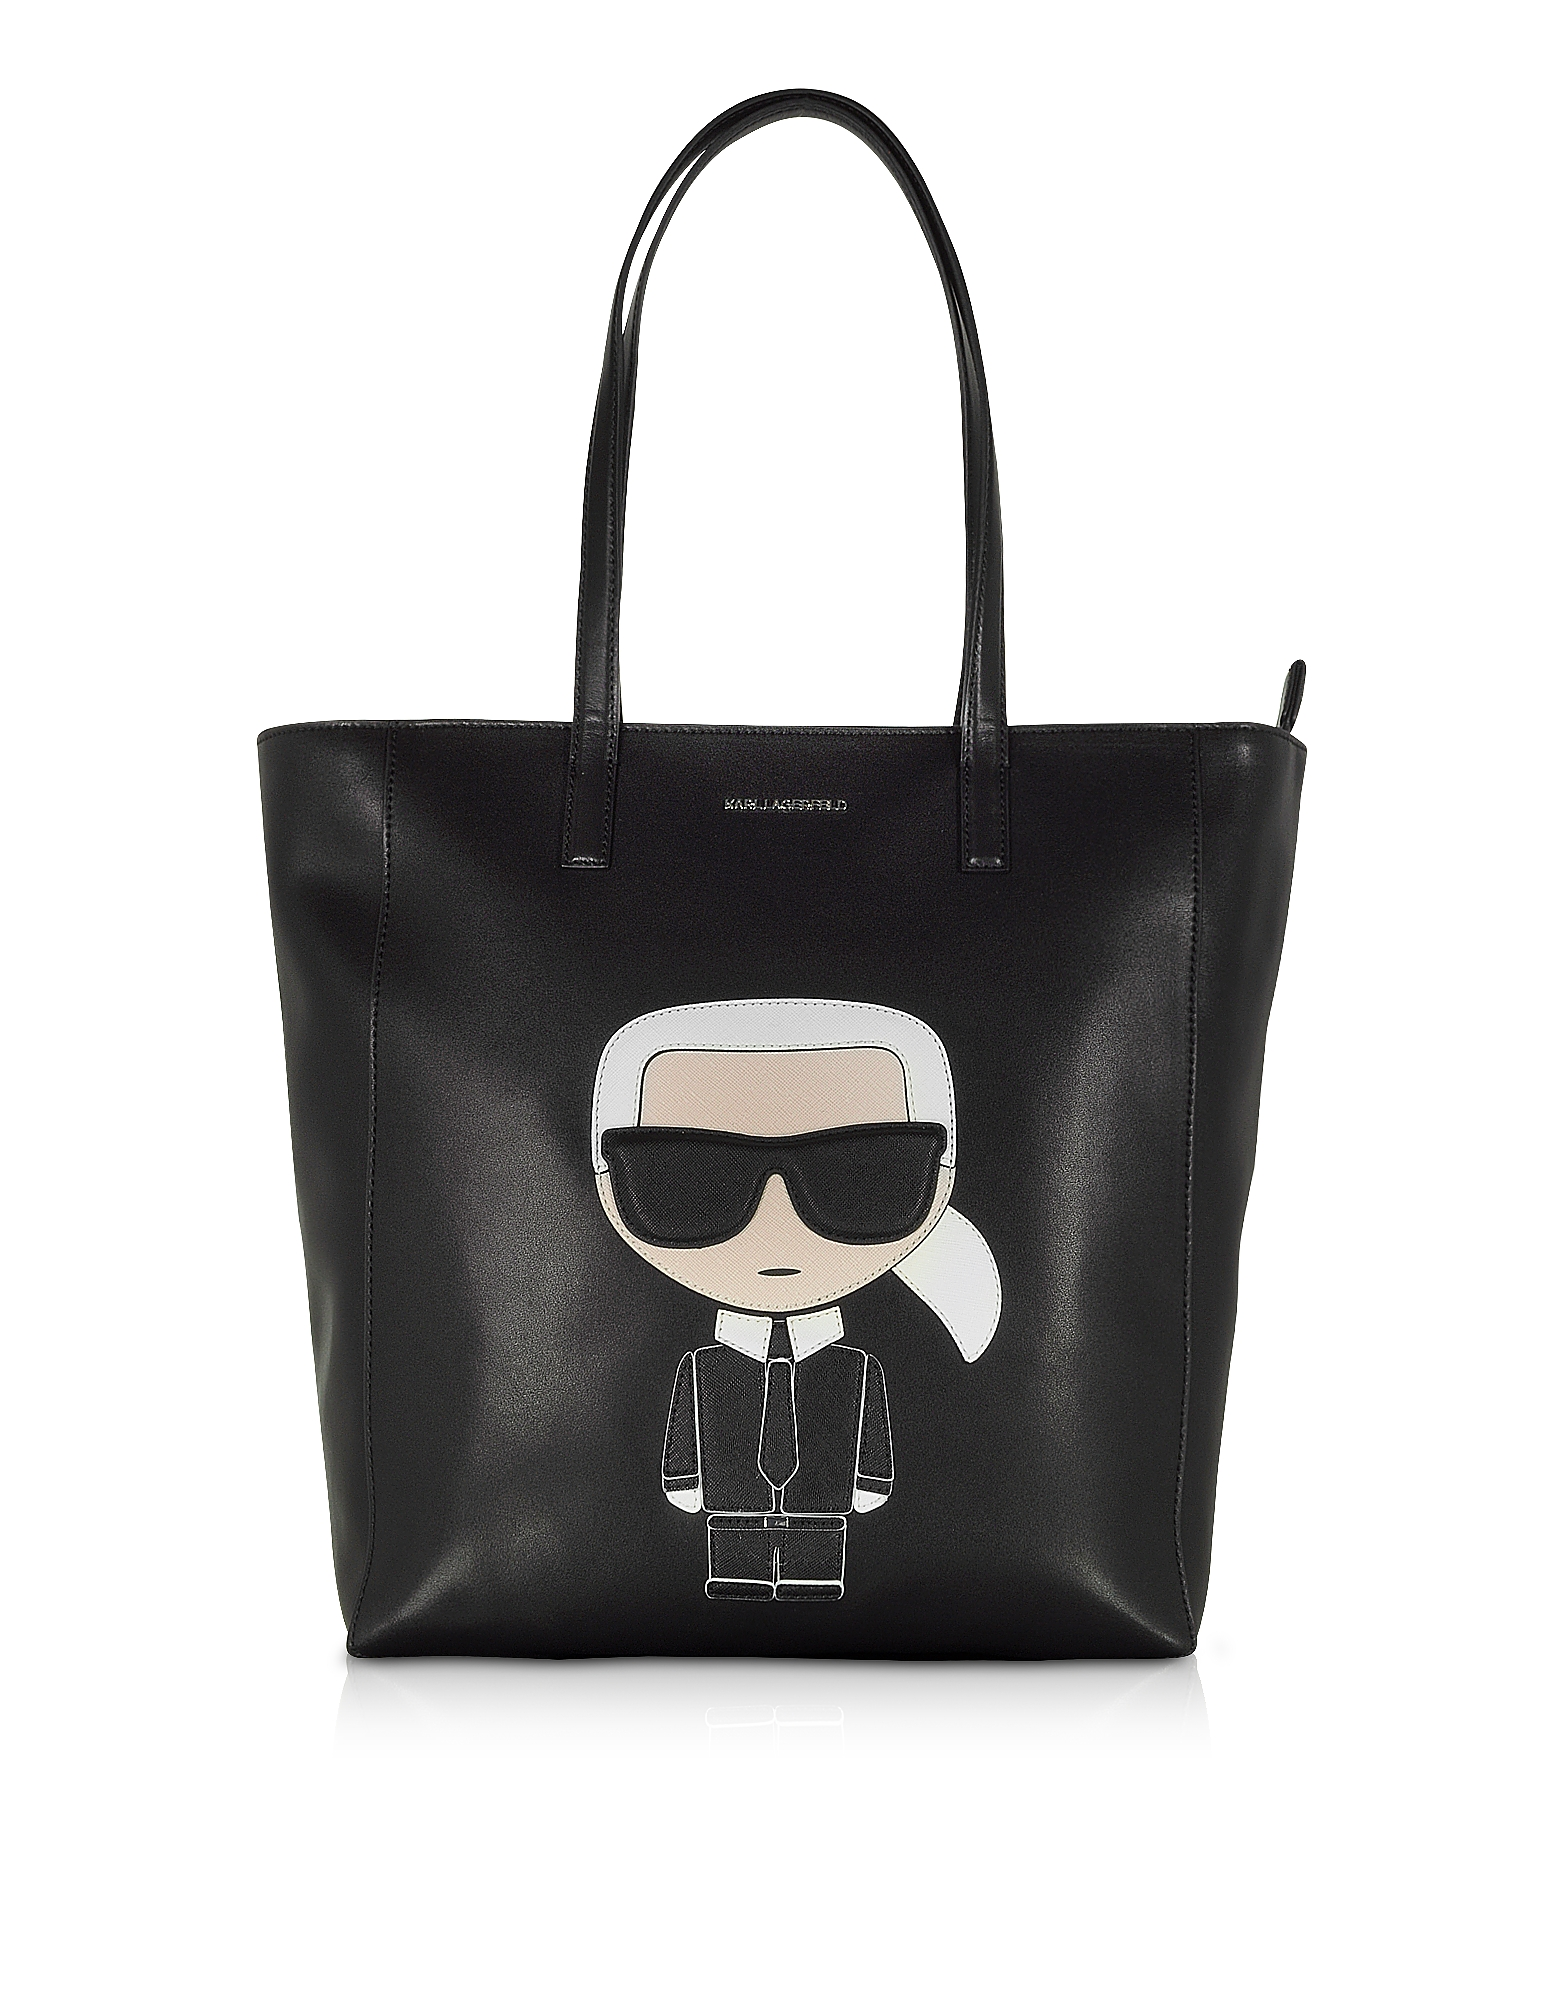 EAN 8720092045827 product image for Karl Lagerfeld Designer Handbags, K/Ikonik Soft Tote Bag | upcitemdb.com